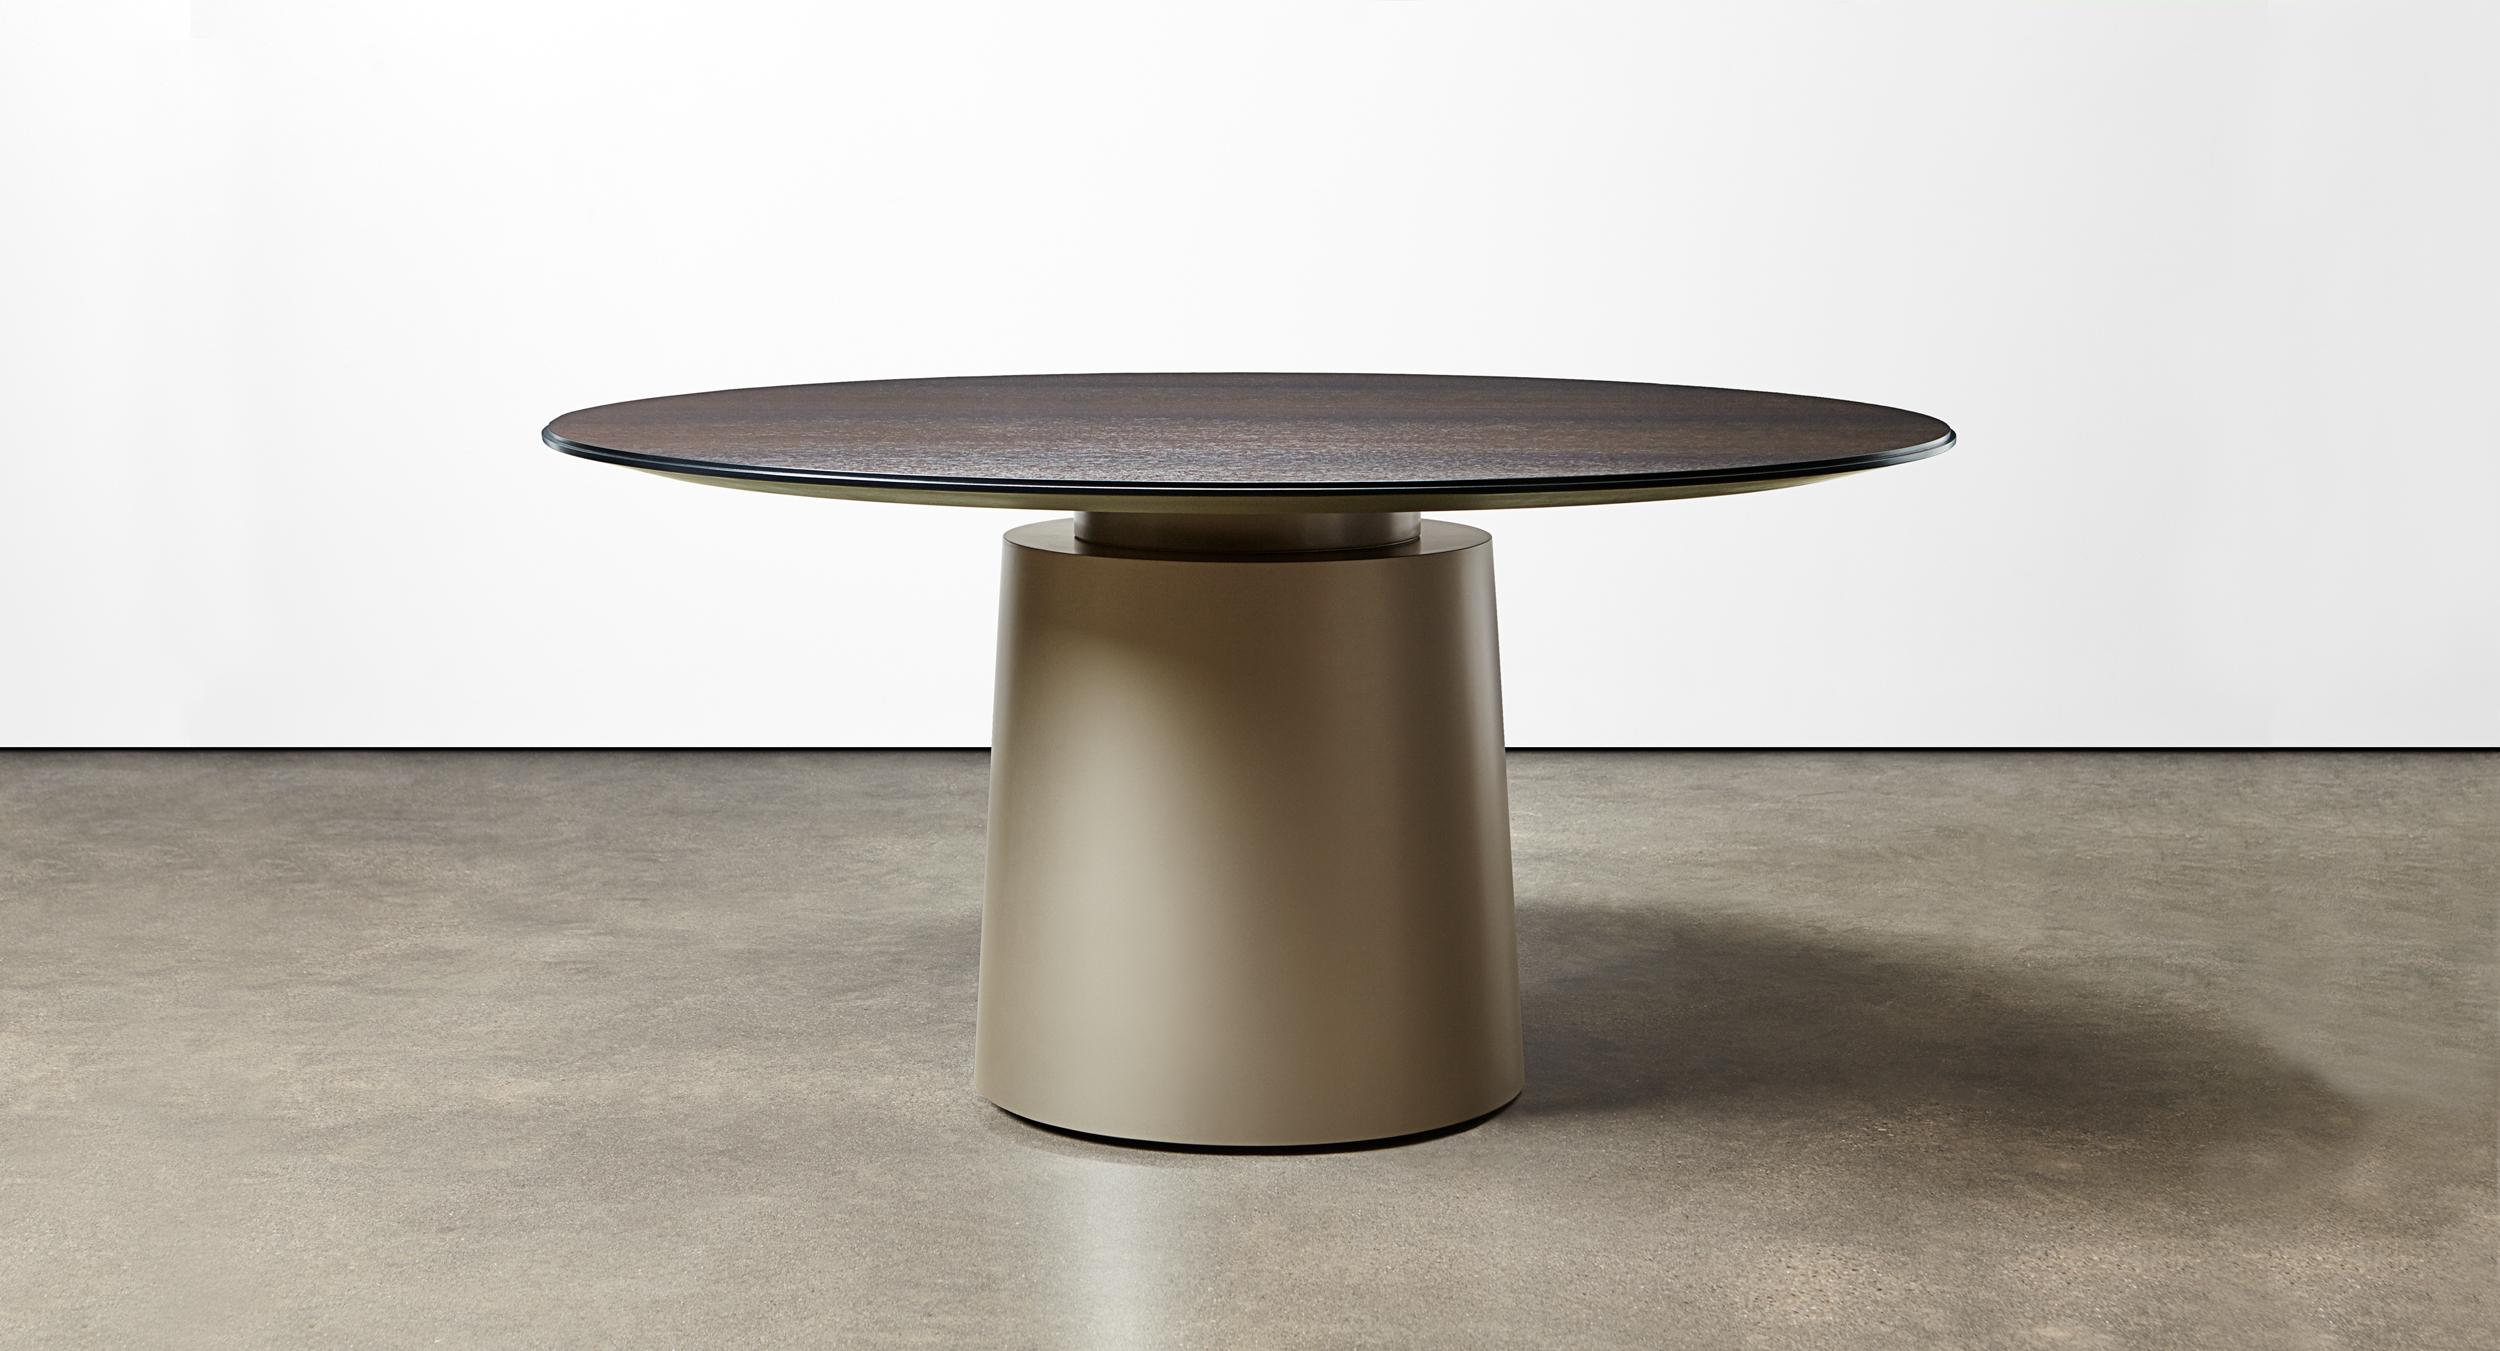 A round meeting table complements and completes the work environment.